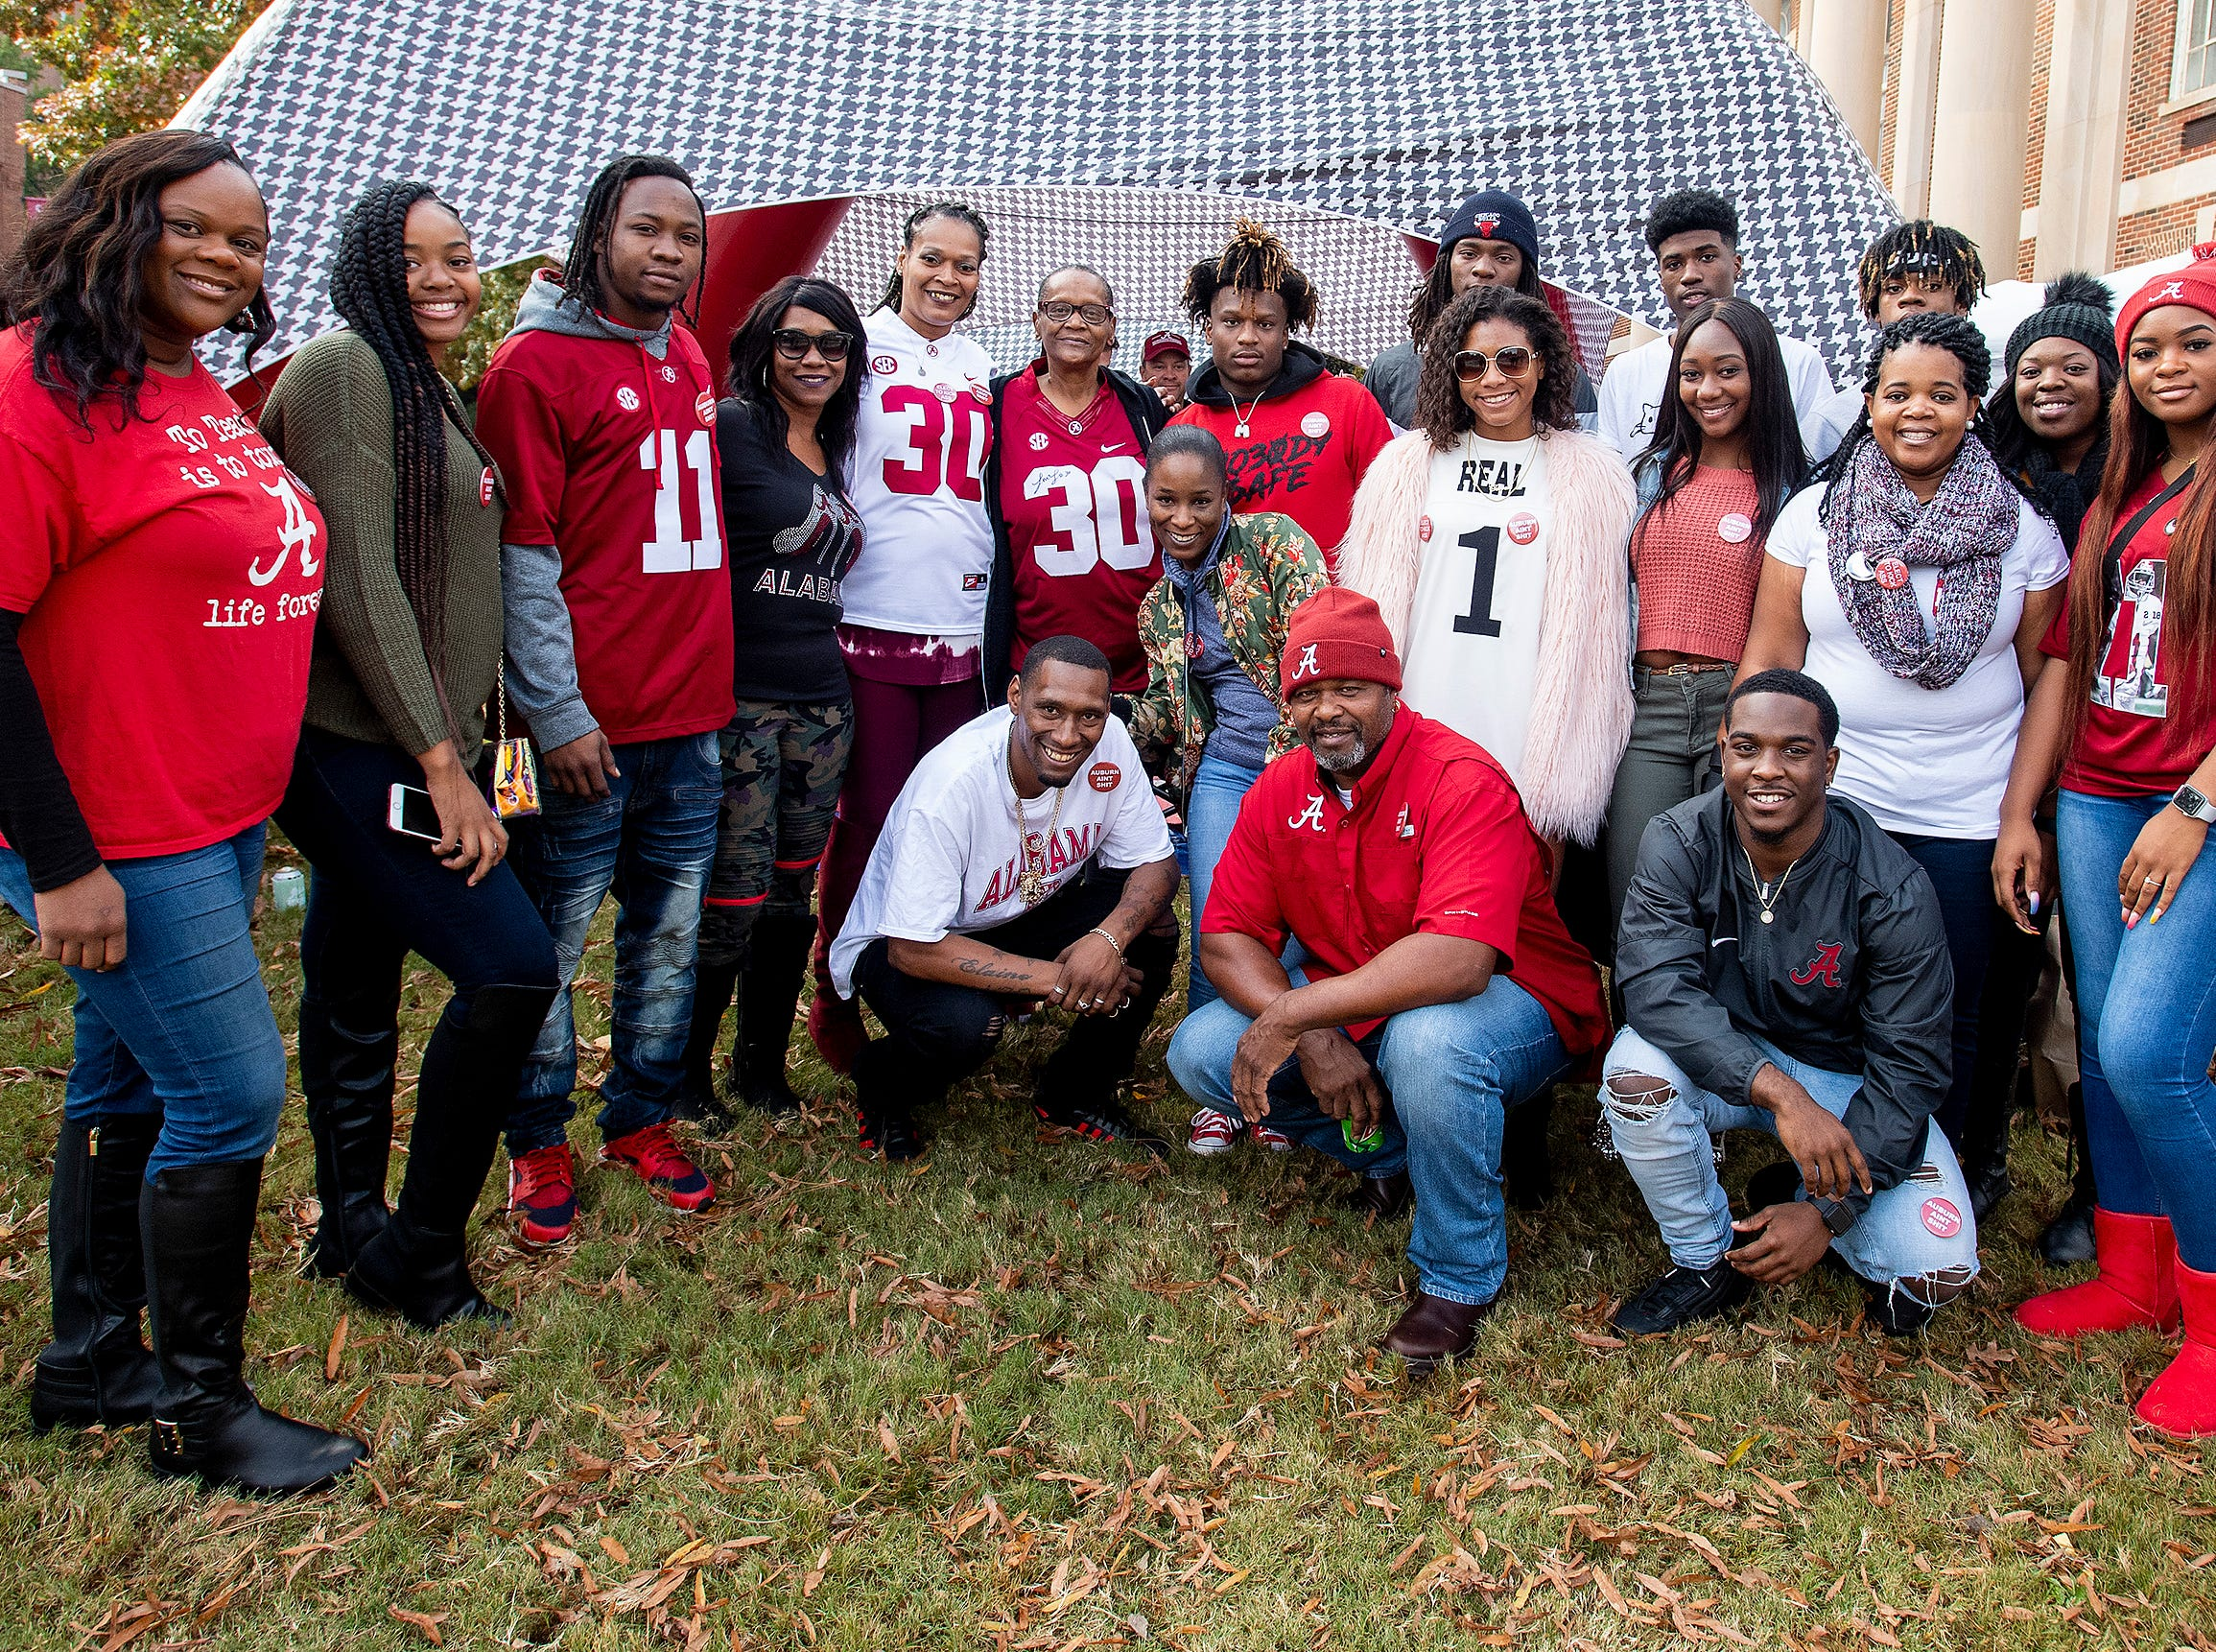 The Ruggs family and the Wilson family tailgate together before the Iron Bowl in Tuscaloosa, Ala., on Saturday November 24, 2018.